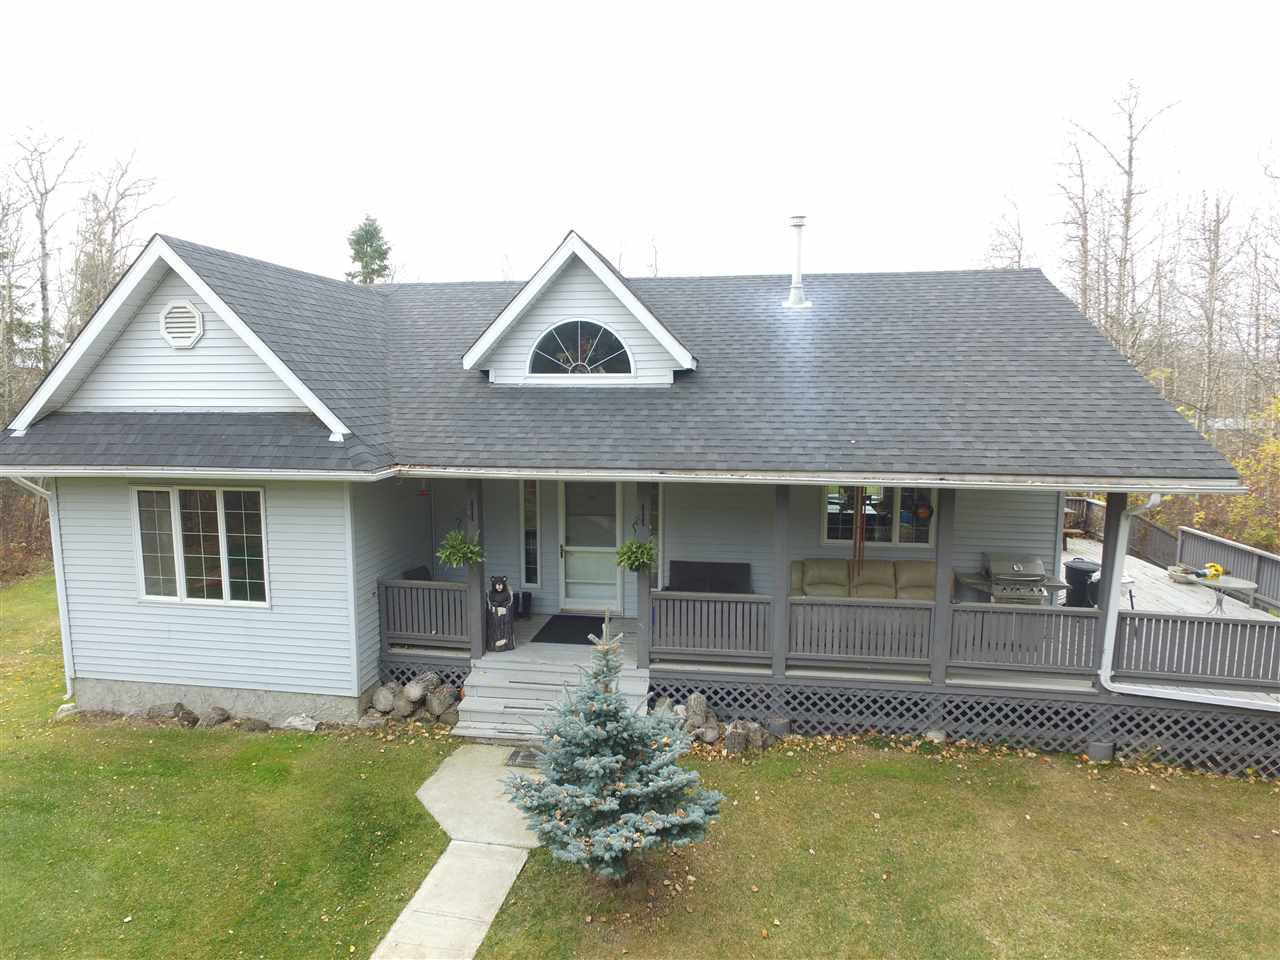 Main Photo: #10-241008 Twp Rd 472: Rural Wetaskiwin County House for sale : MLS®# E4217991